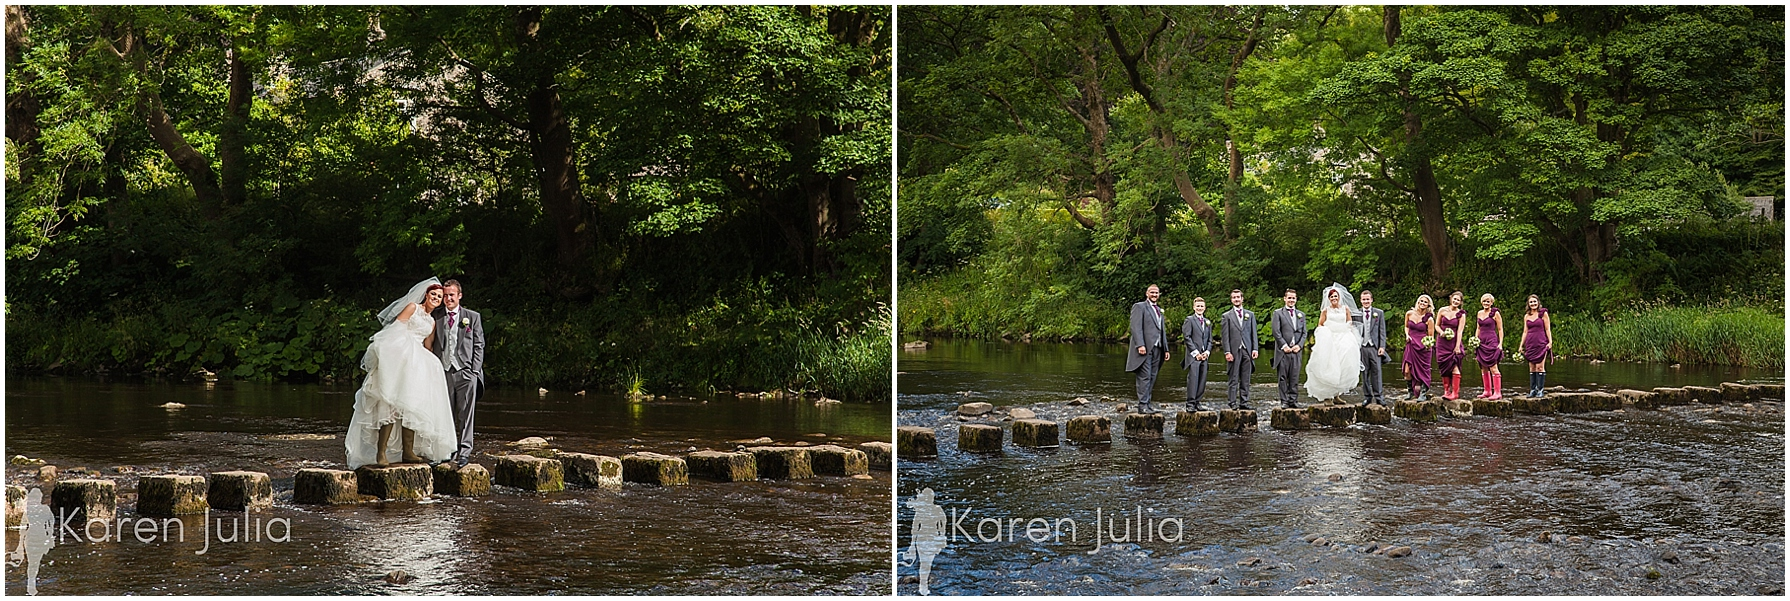 stepping stones portraits river hodder